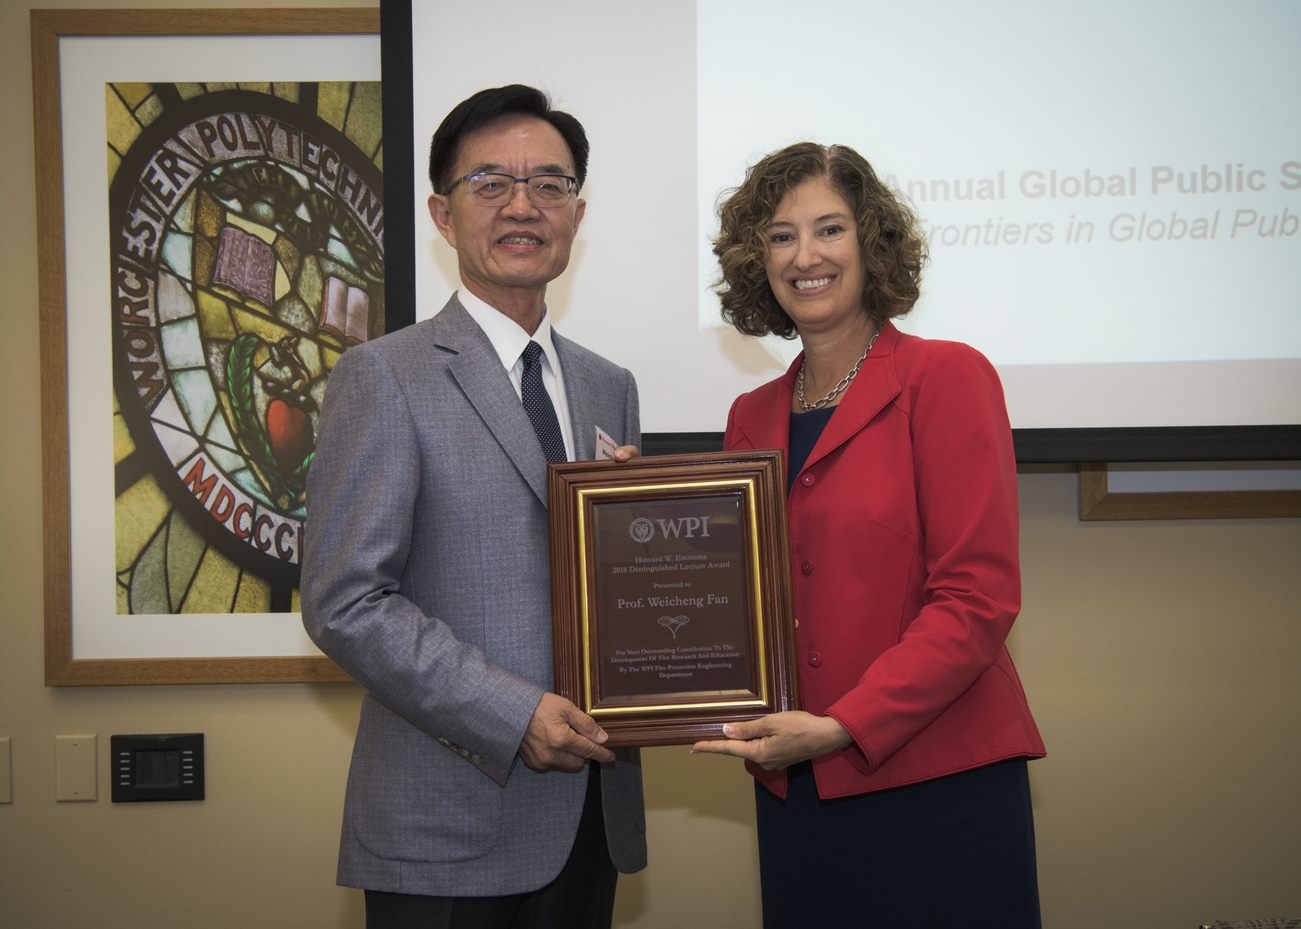 resident Laurie Leshin presents the Howard W. Emmons Distinguished Lecture Award to Professor Weicheng Fan of Tsinghua University